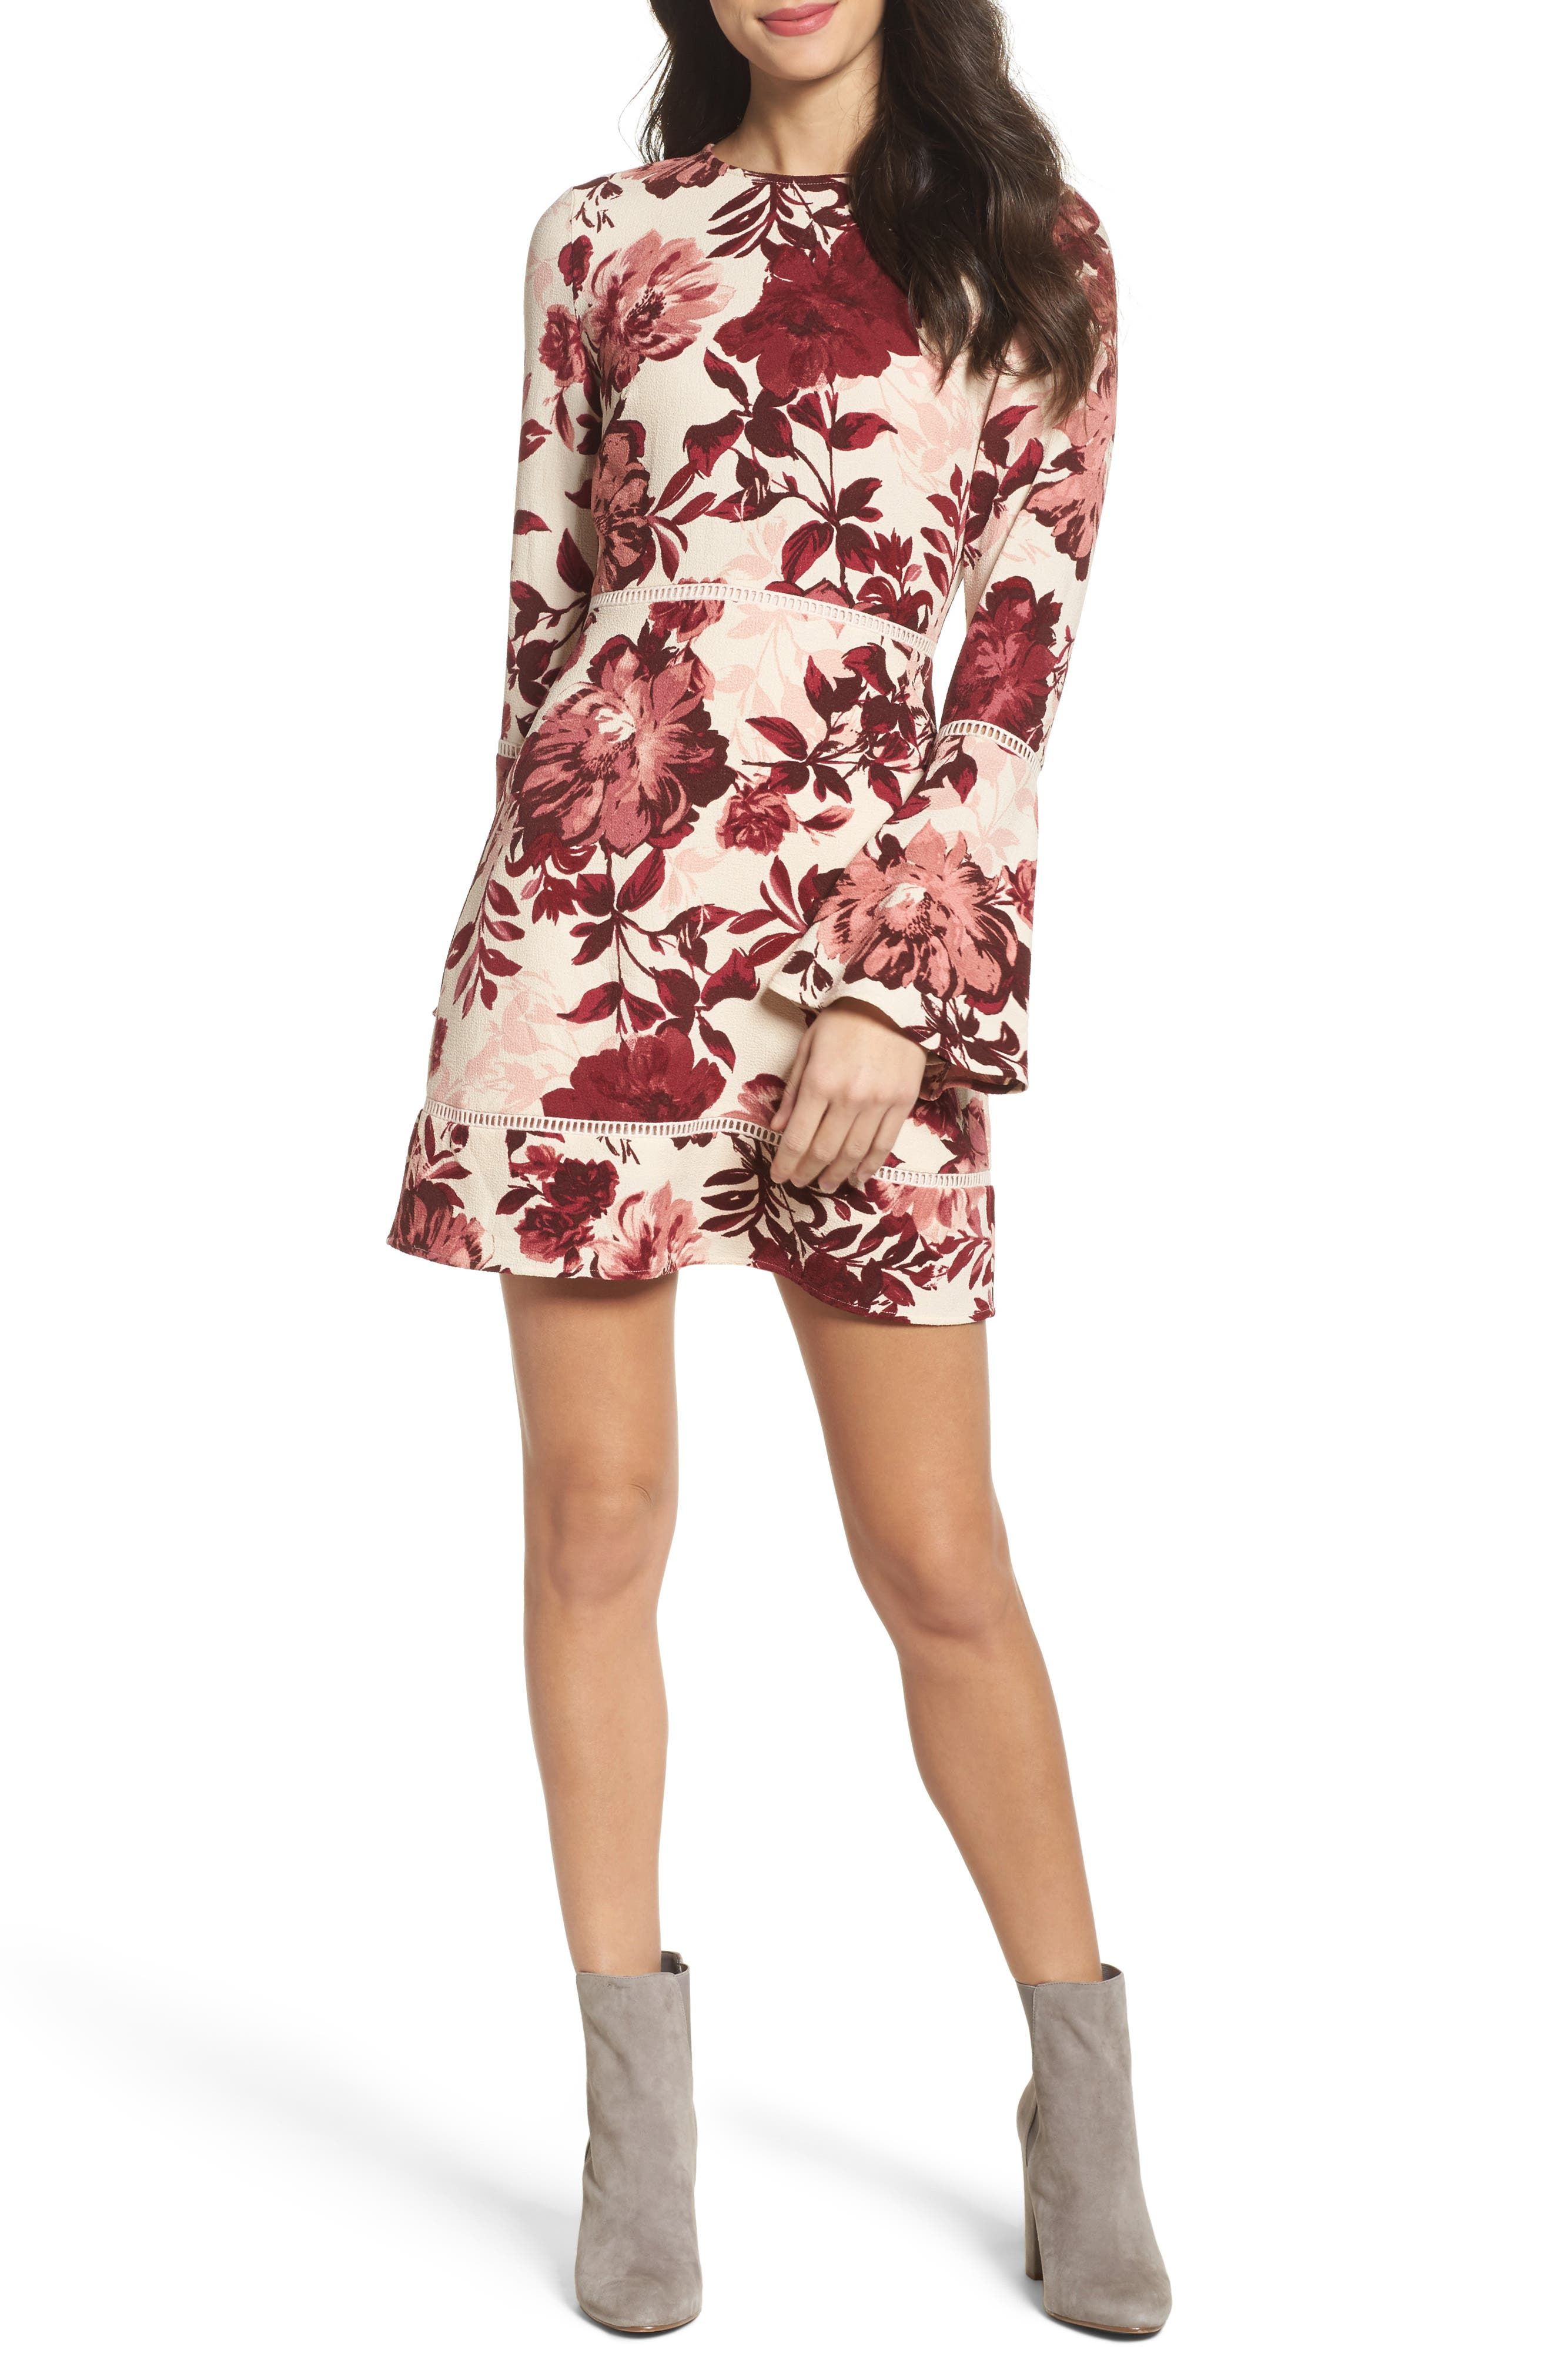 Bell Sleeve Minidress,                             Main thumbnail 1, color,                             Blush/ Burgundy Floral